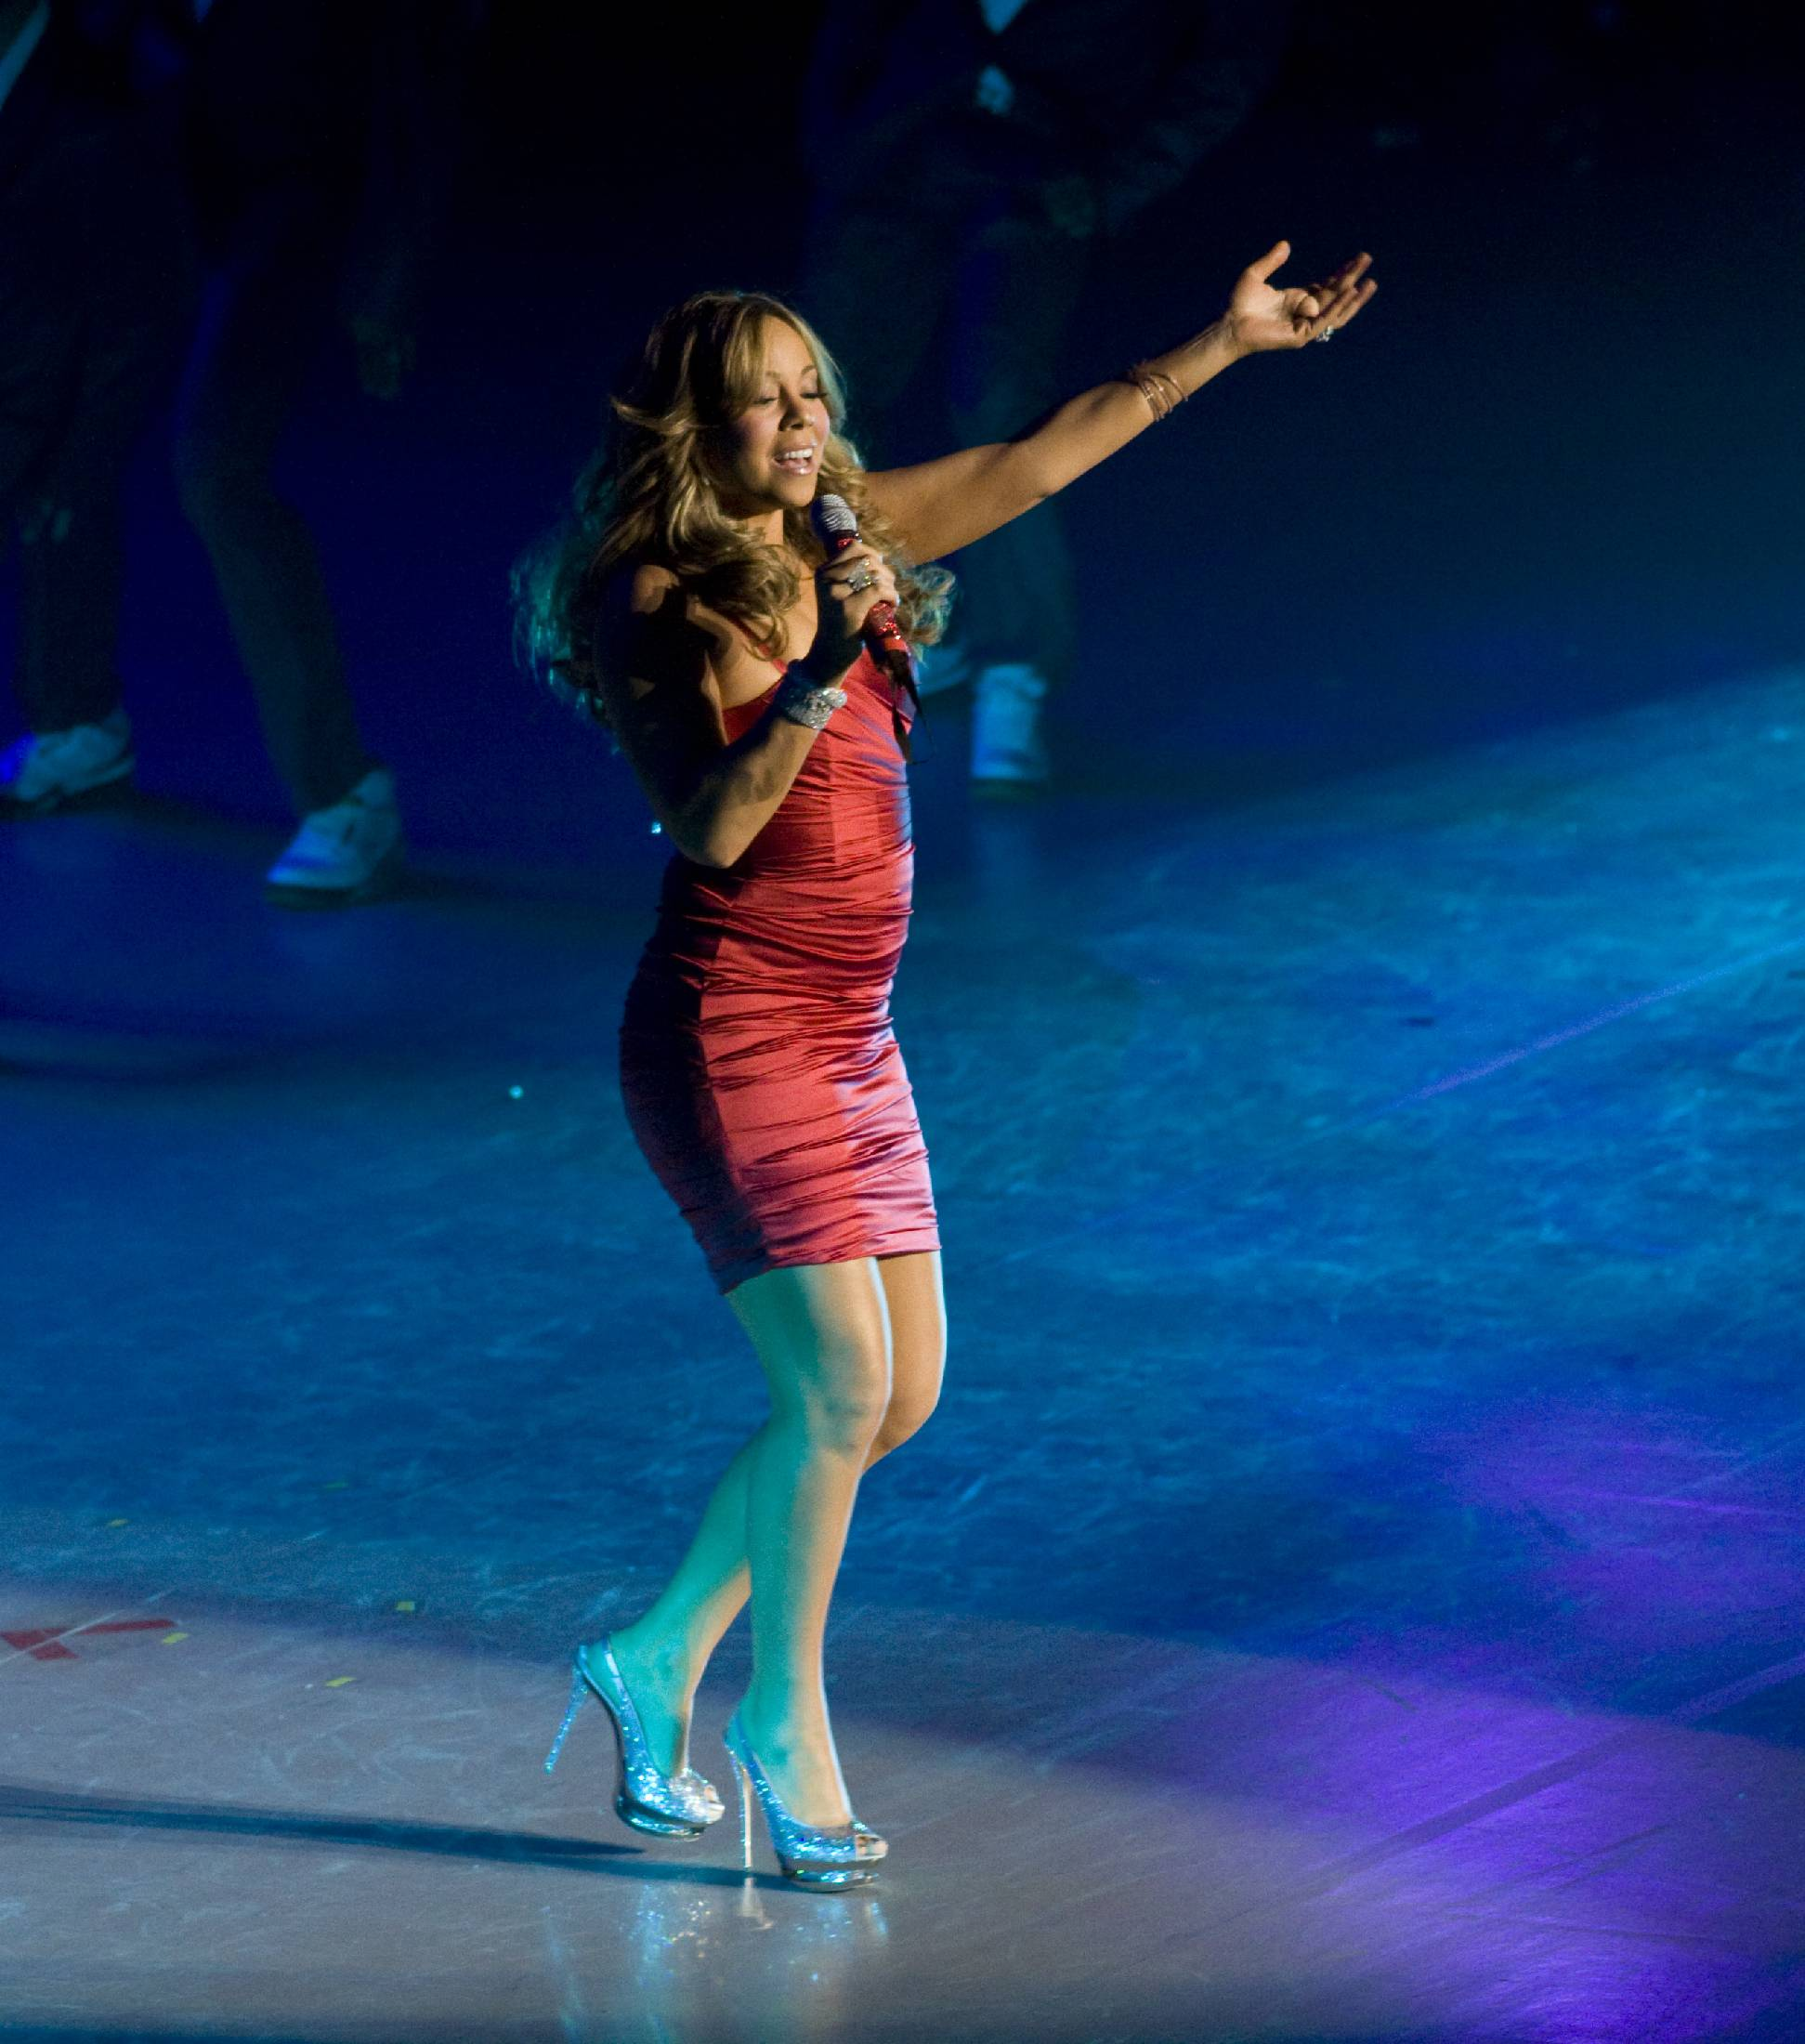 53489_Mariah_Carey_performs_at_Madison_Square_Garden_in_New_York_City-23_122_483lo.jpg